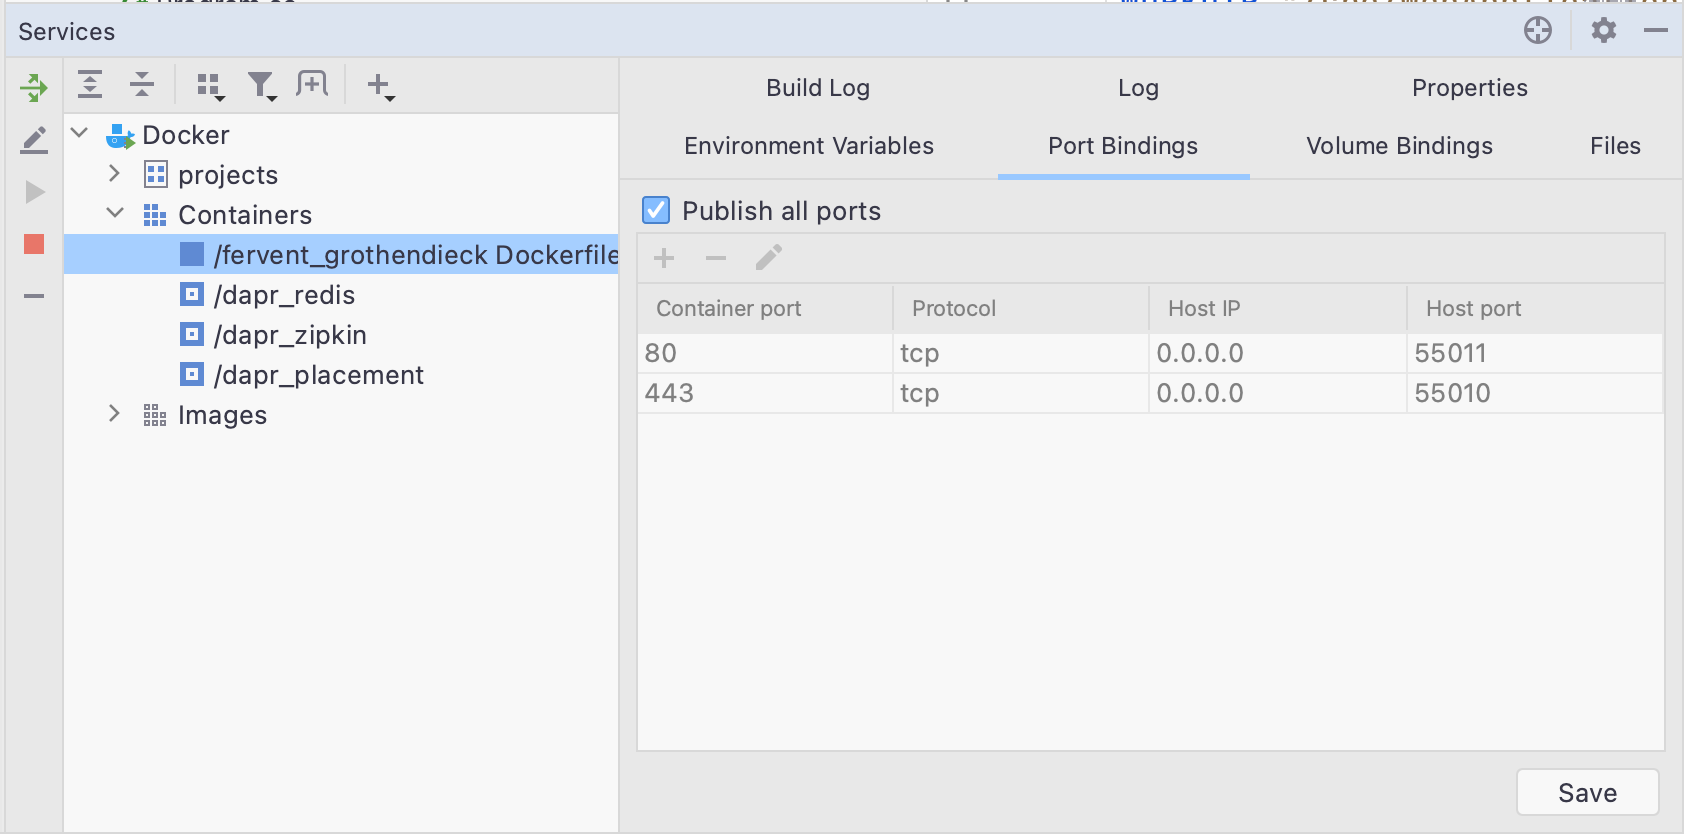 Docker publish all ports in Services window